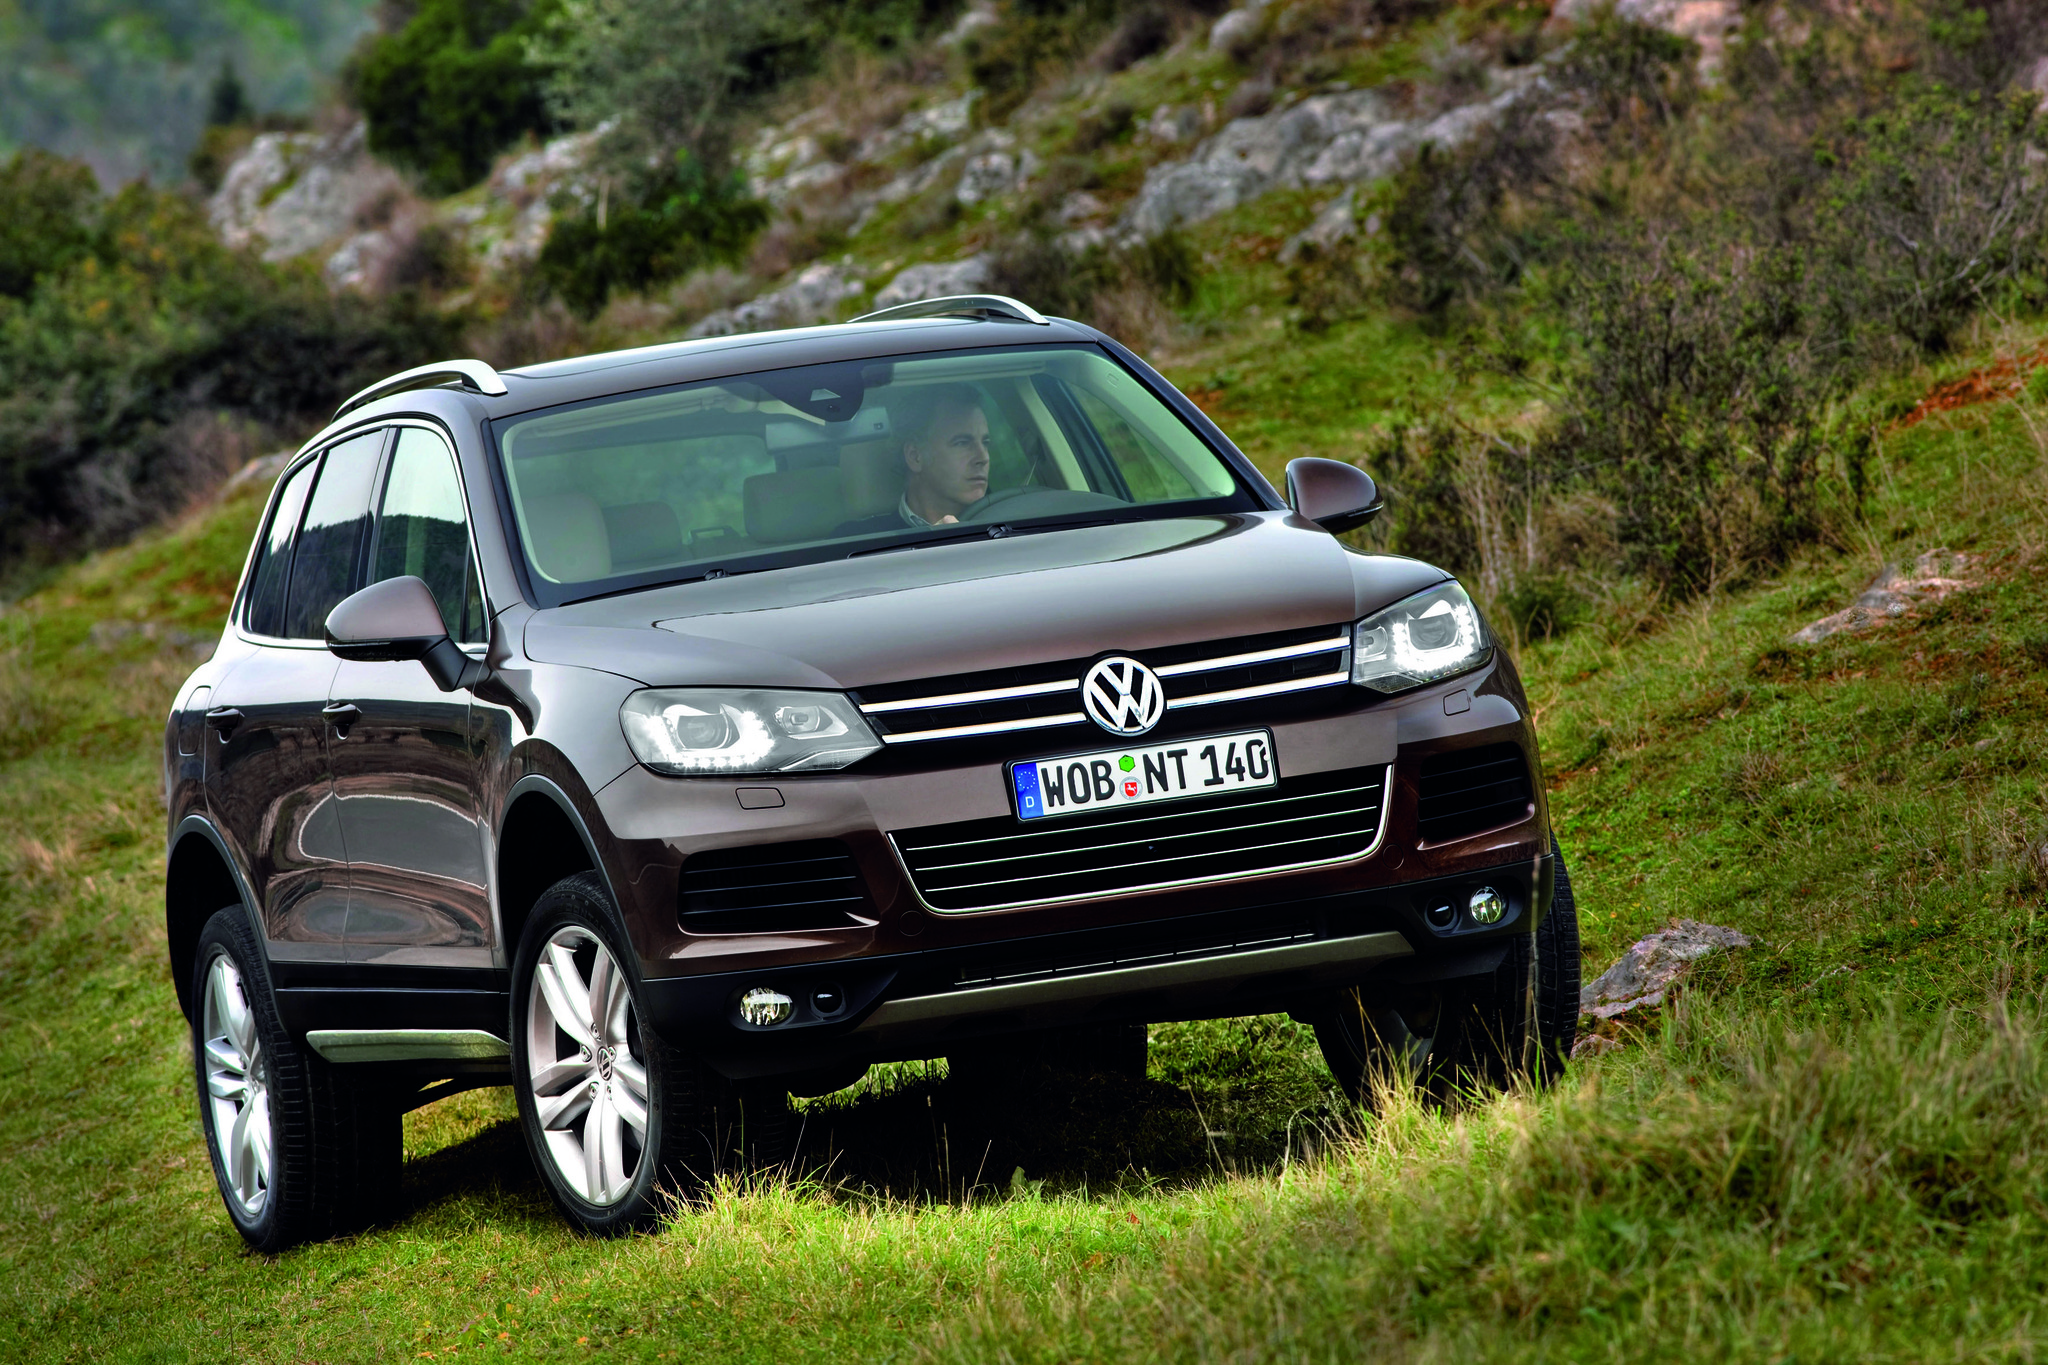 vw touareg luxuri s ins gel nde innsbruck. Black Bedroom Furniture Sets. Home Design Ideas